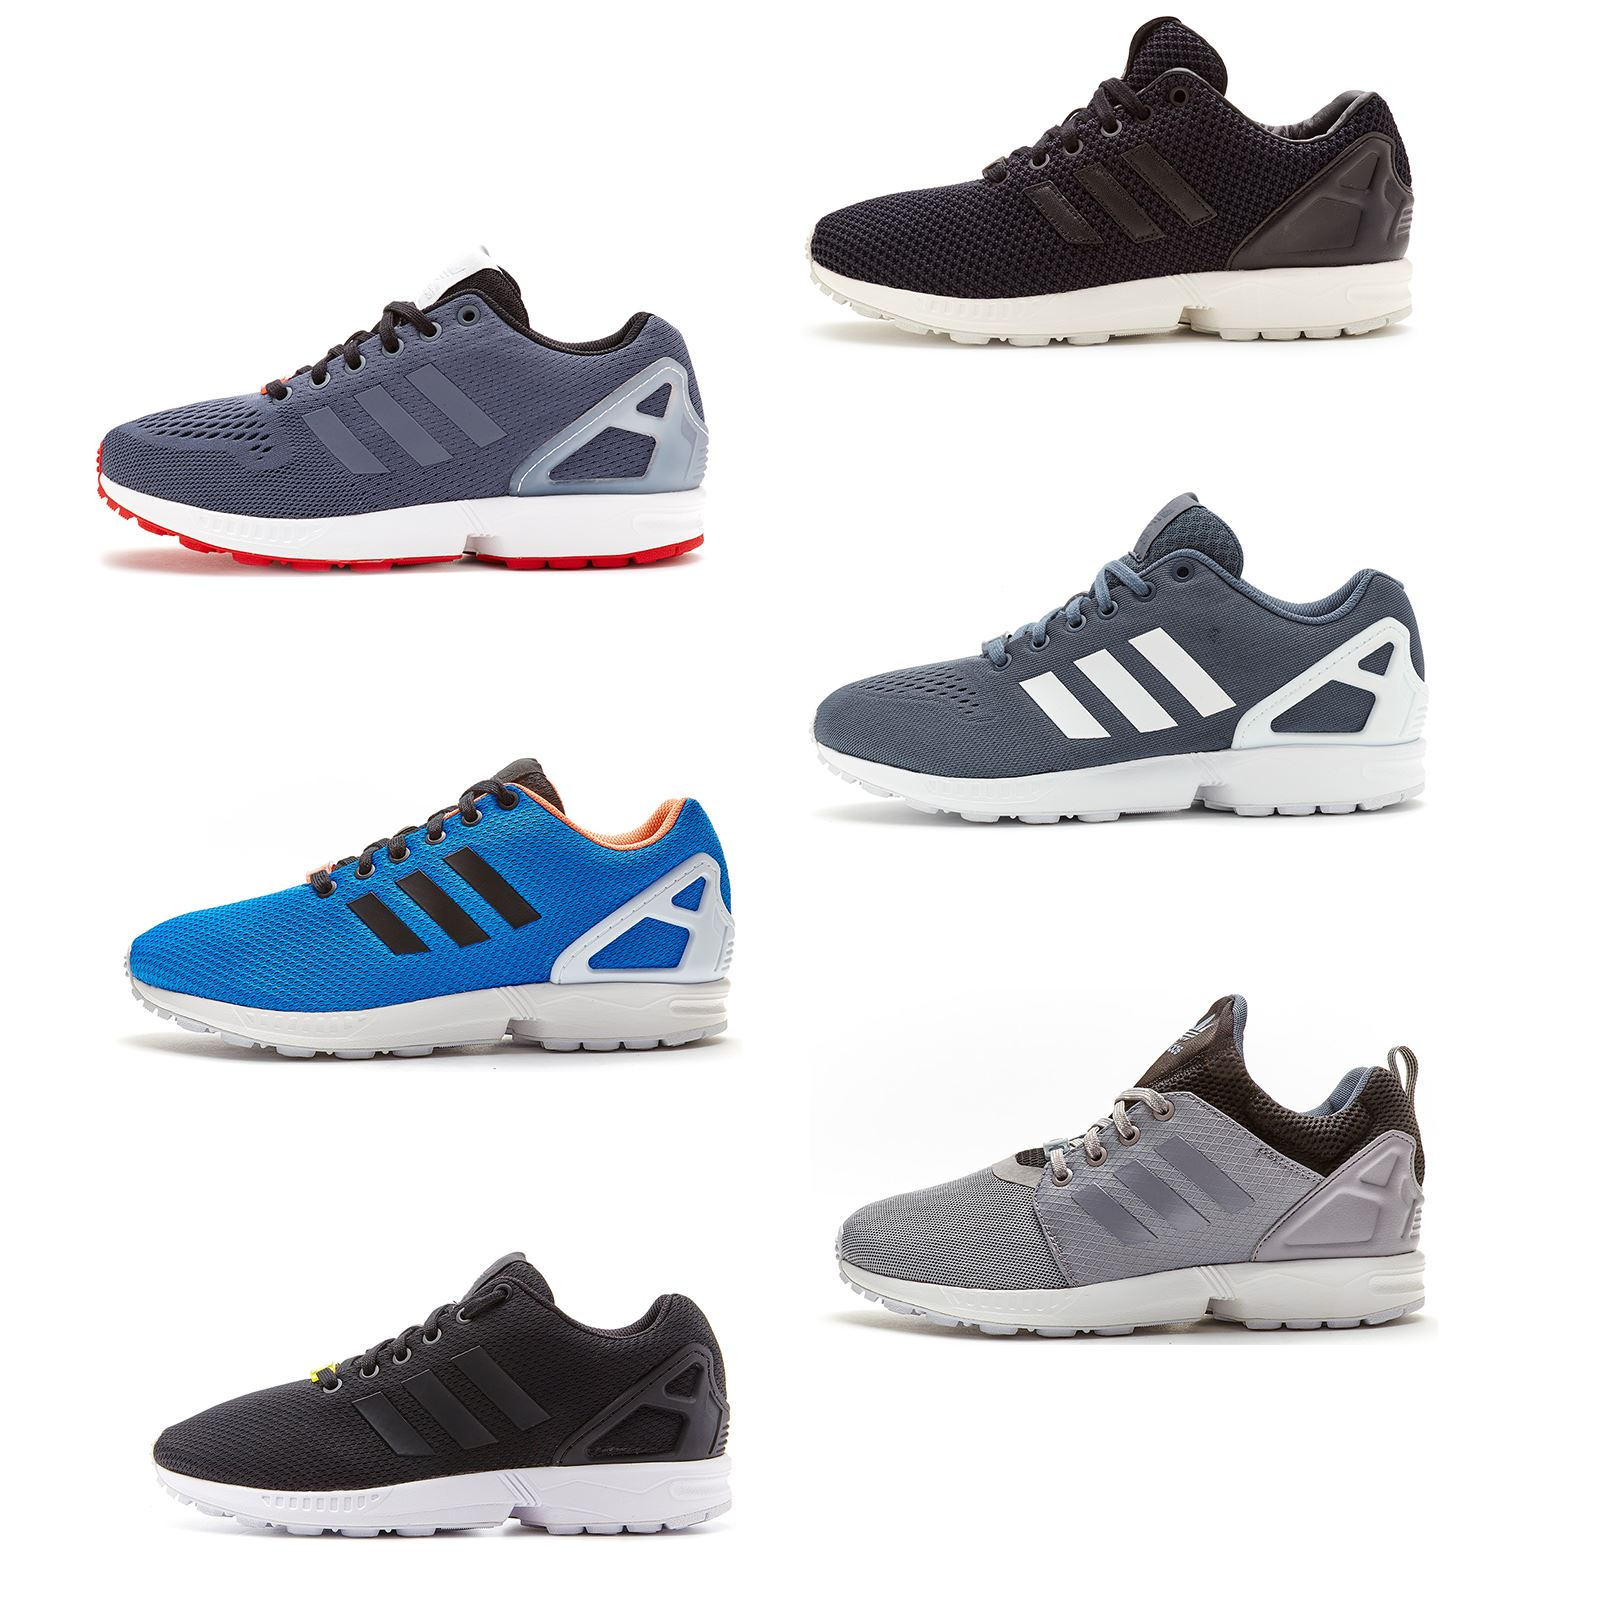 73a91c2e5f093 Details about Mens Adidas Originals ZX Flux Running Trainers All Sizes